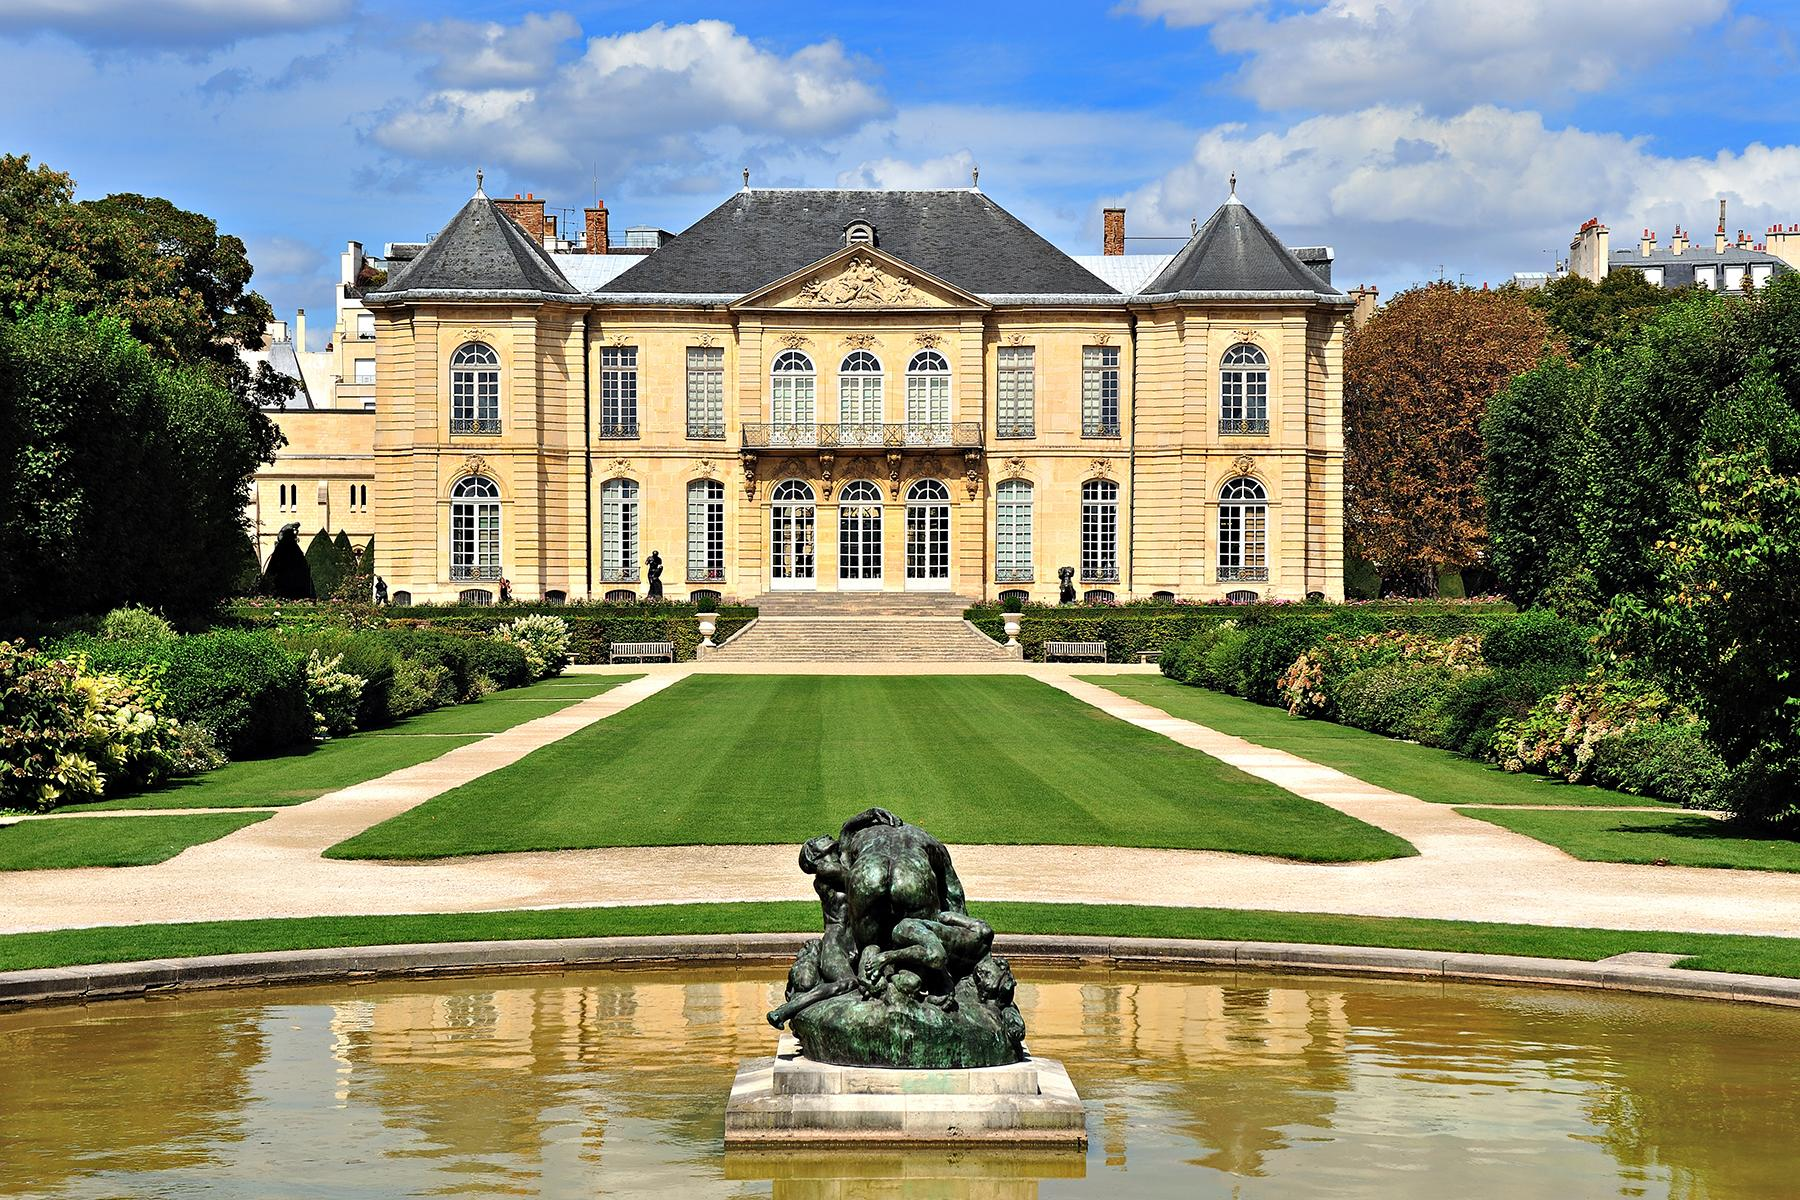 2 Visit the Musee Rodin the 25 ultimate things to do in paris The 25 Ultimate Things to Do in Paris 2 Visit the Musee Rodin